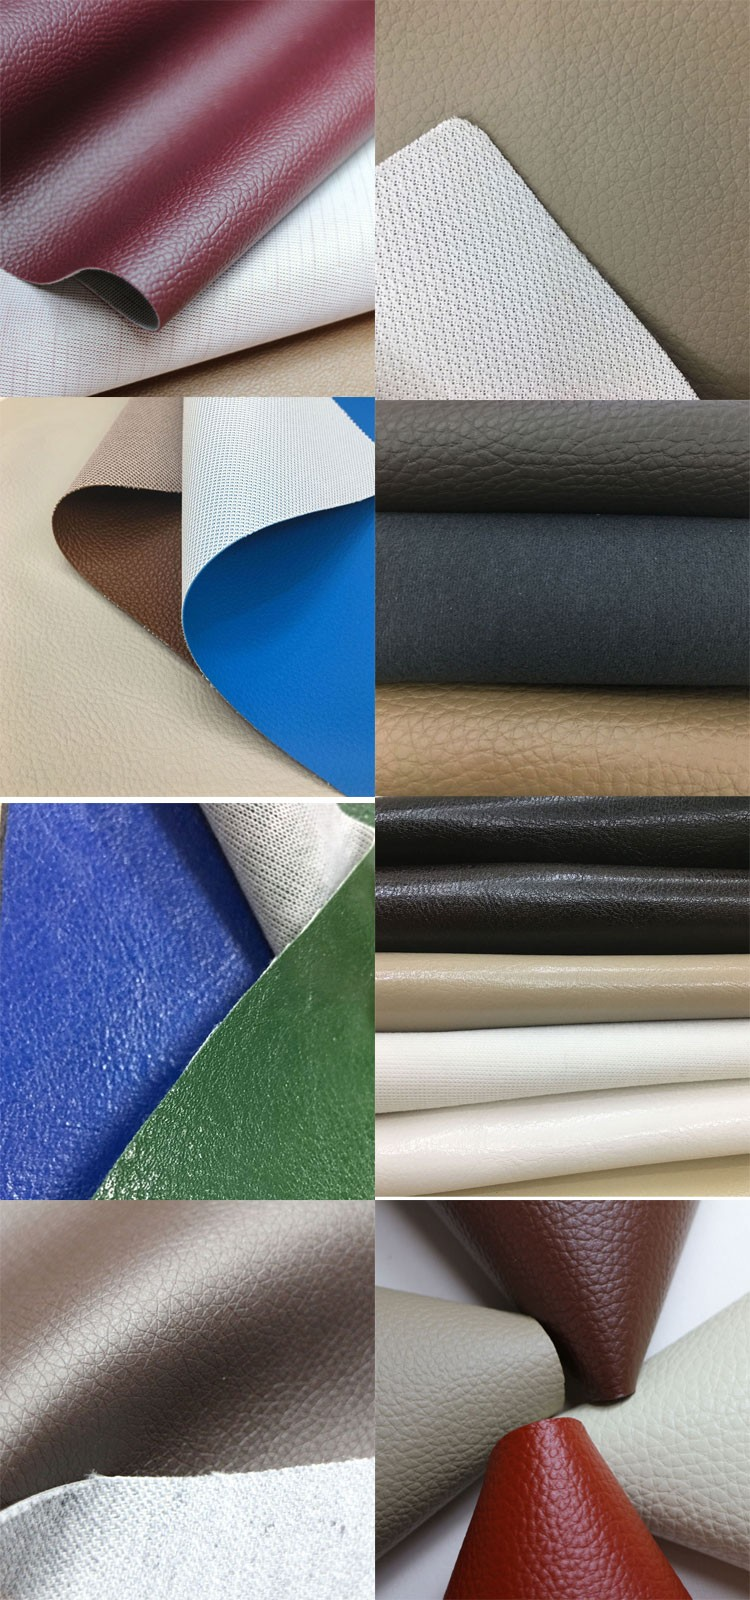 New style Imitation Leather Fabric & Sofa Leather Material